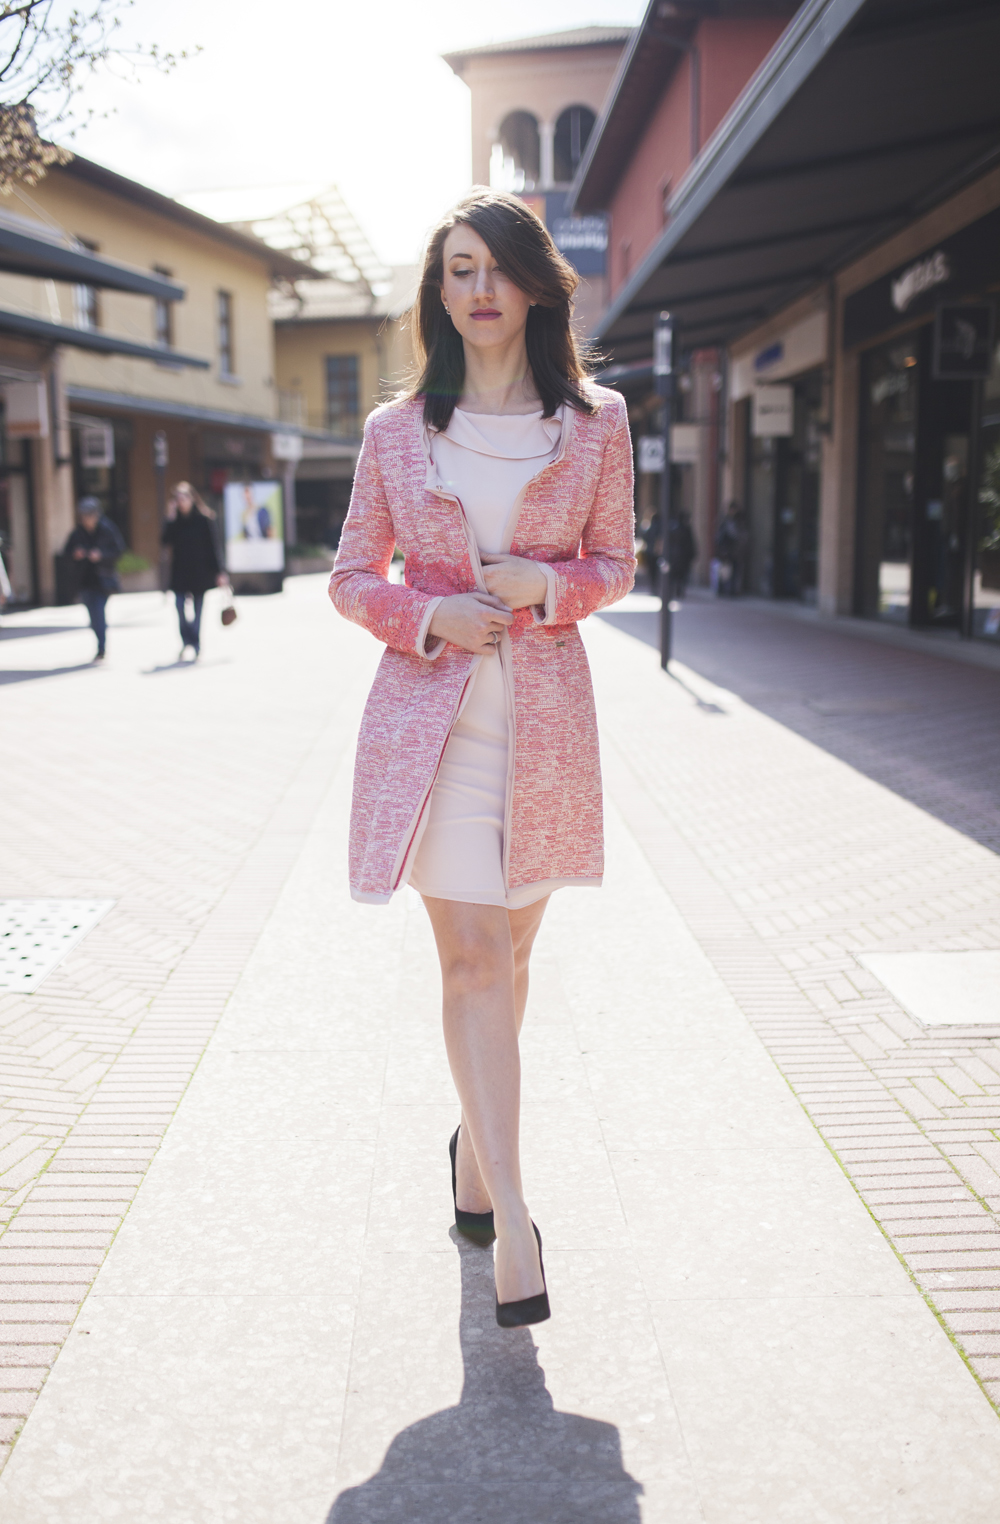 cosa comprare al castel guelfo the style outlets